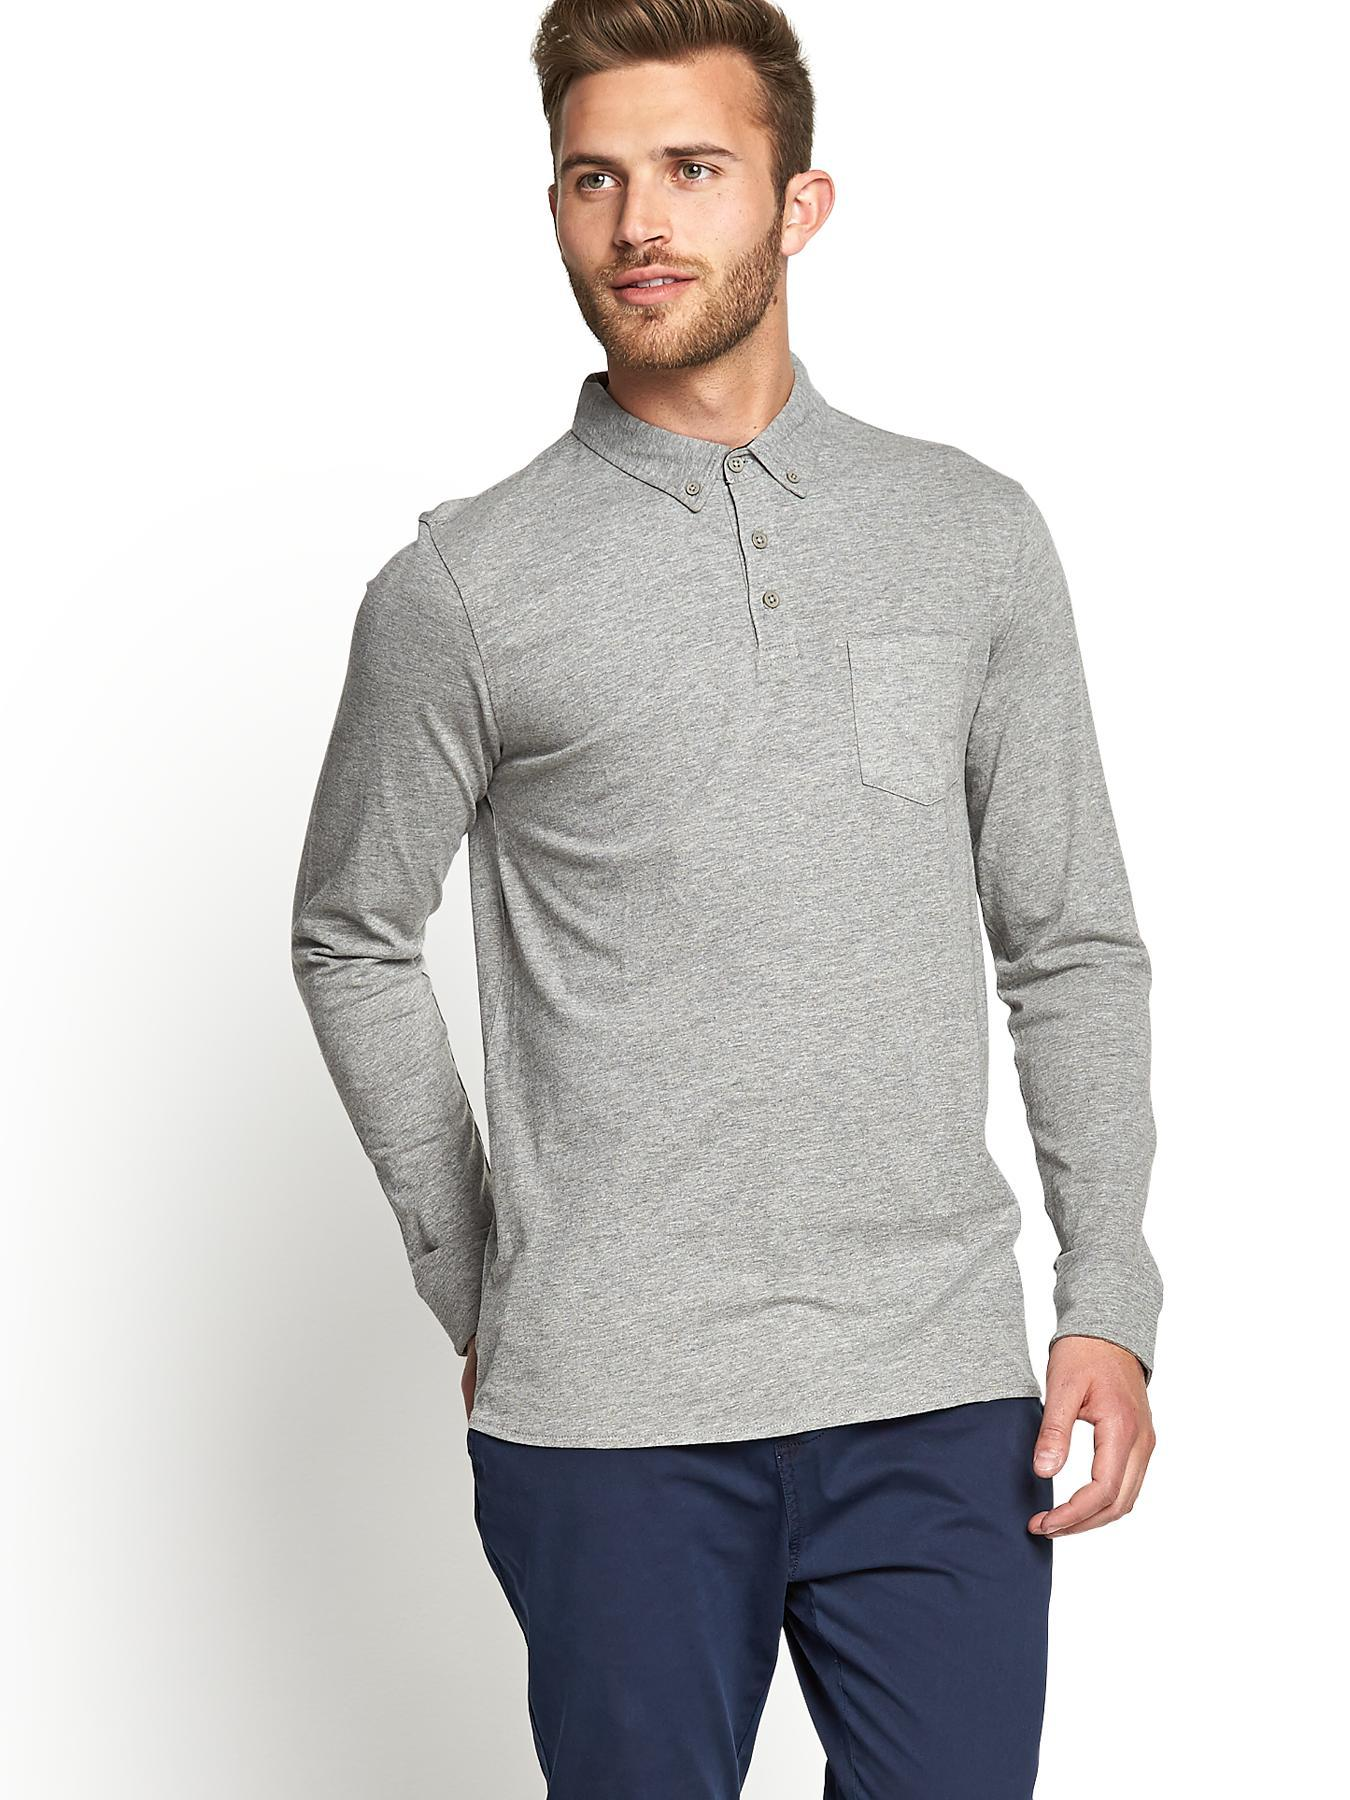 Mens Long Sleeve Slim Fit Jersey Polo T-shirt, Grey at Littlewoods